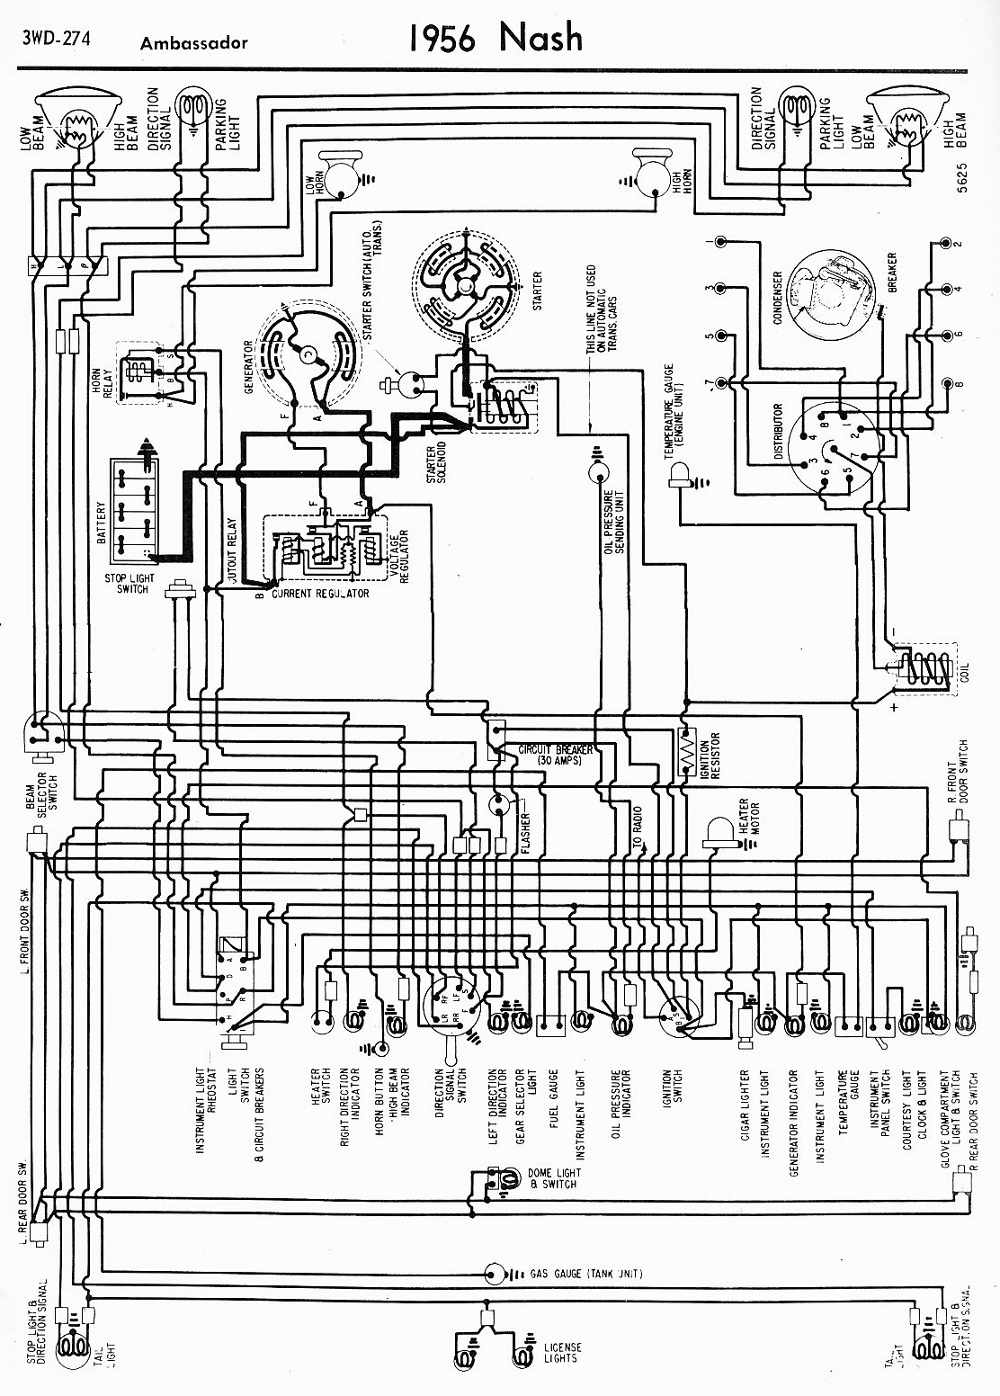 small resolution of appealing 1956 ford thunderbird ignition switch wiring diagram 71 ford ignition switch diagram 1956 ford thunderbird